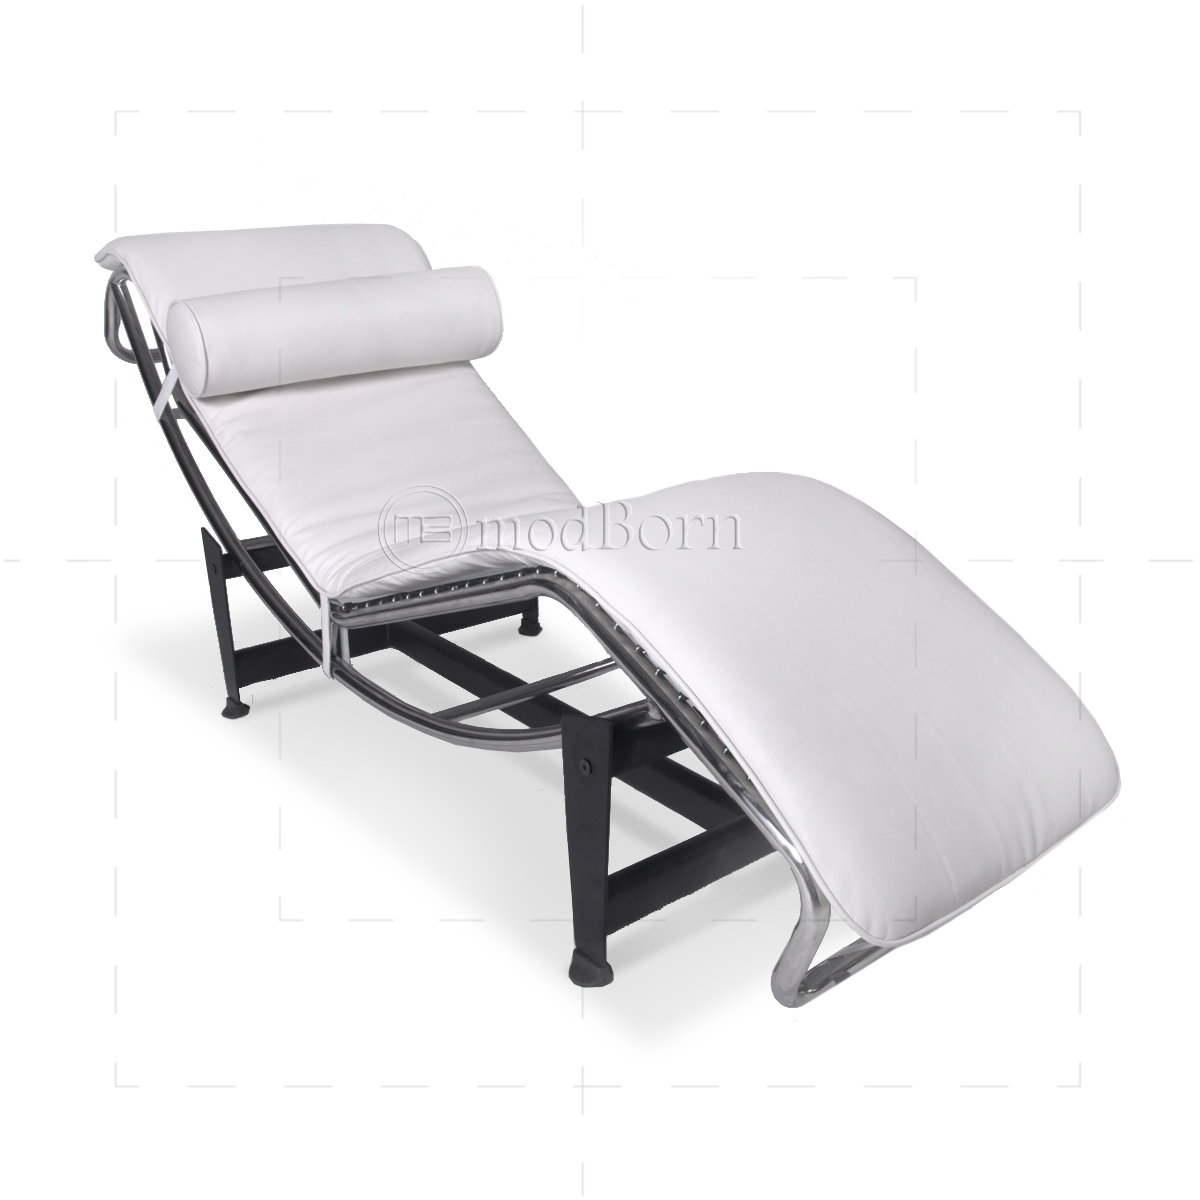 Le corbusier style lc4 chaise longue white leather for Chaise le corbusier